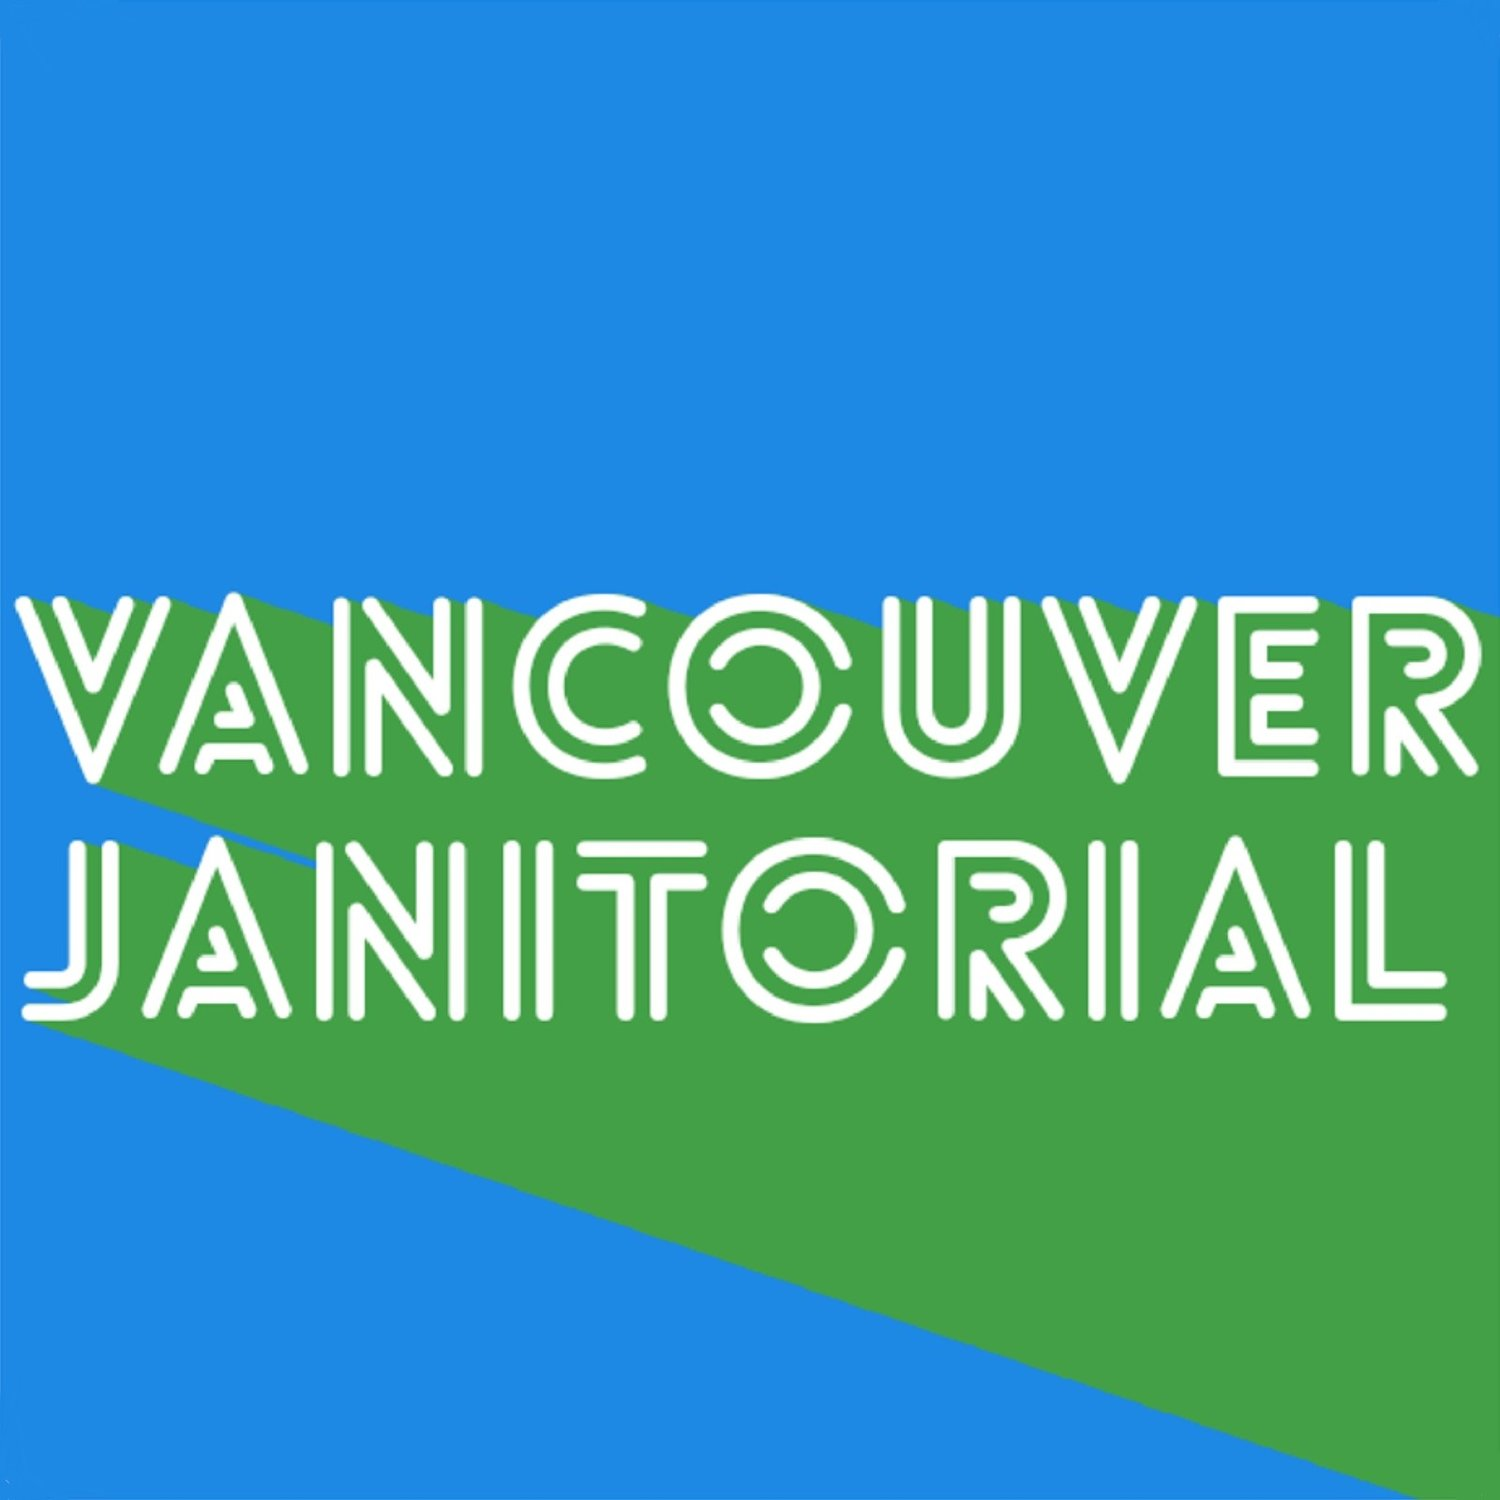 Vancouver Janitorial Services LLC